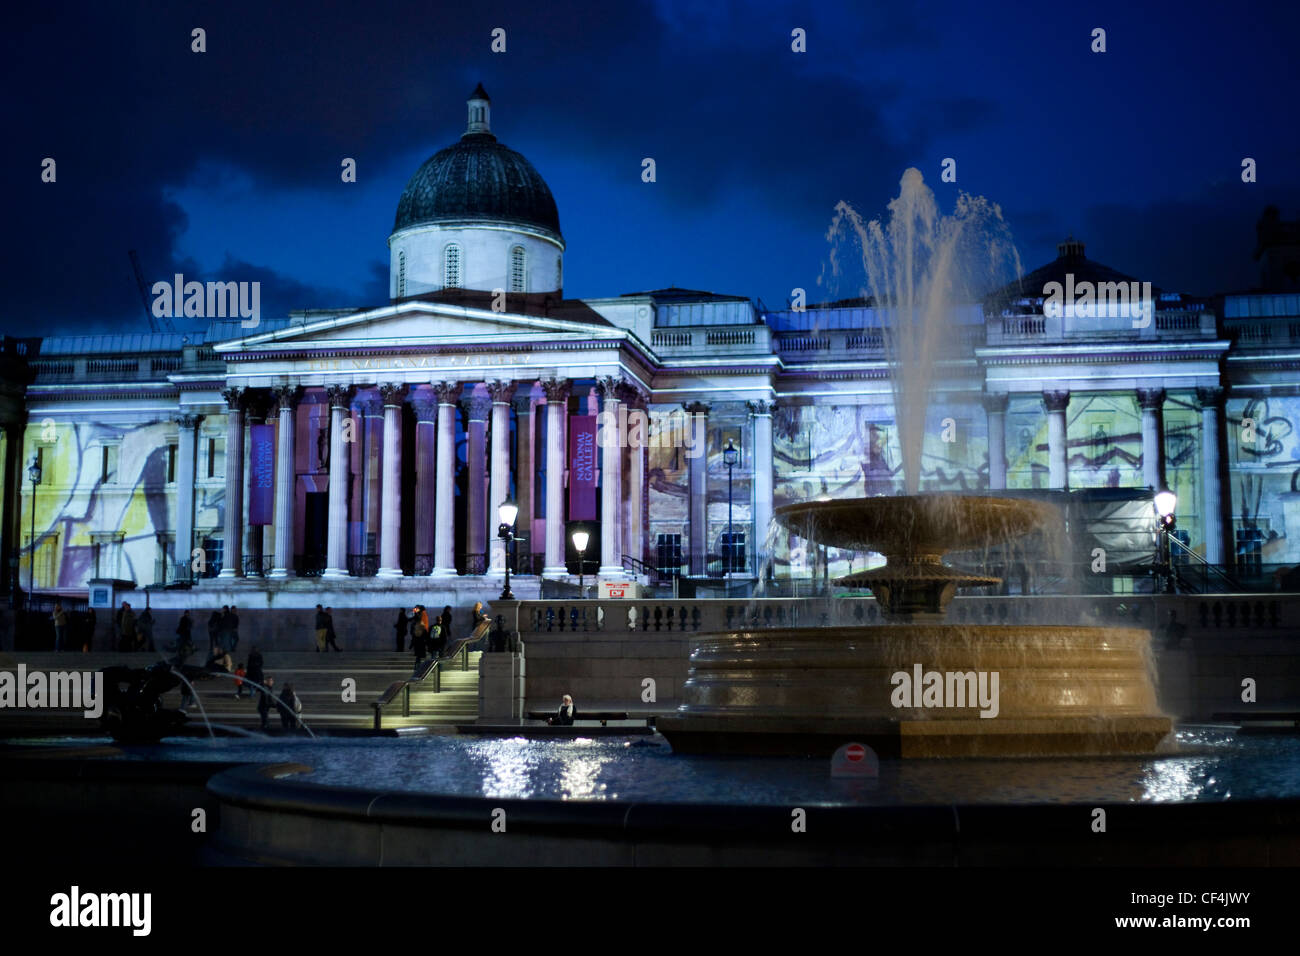 The National Gallery lit by the projected images of Picasso. - Stock Image